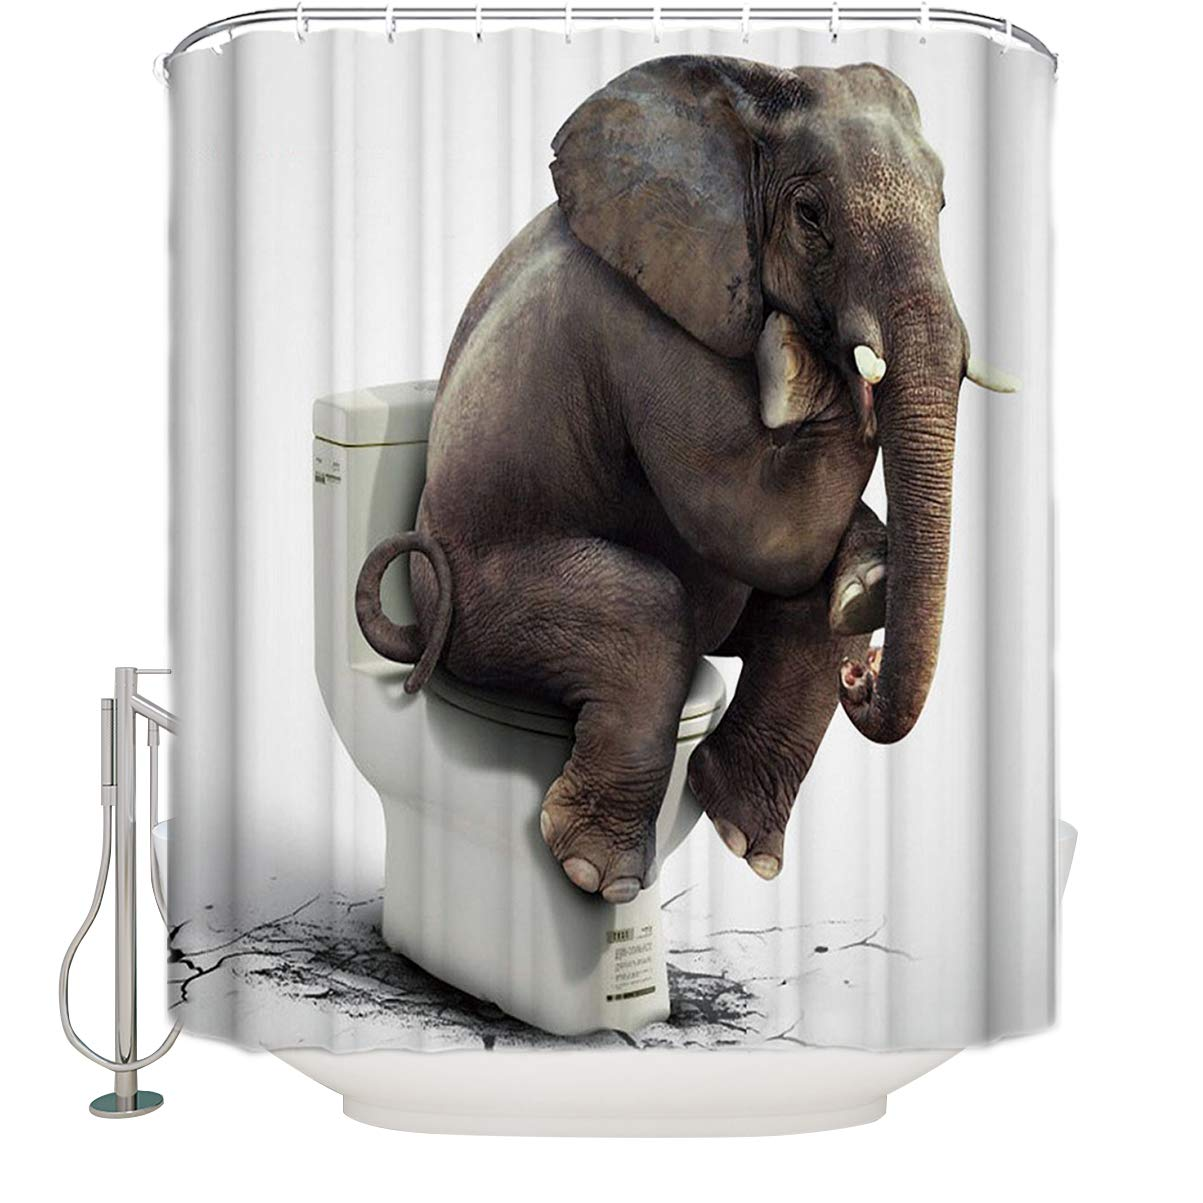 Heavy Duty Shower Curtain Water Resistant Drapes Bath Decor India Elephant Shower Curtains Home, Furniture & DIY